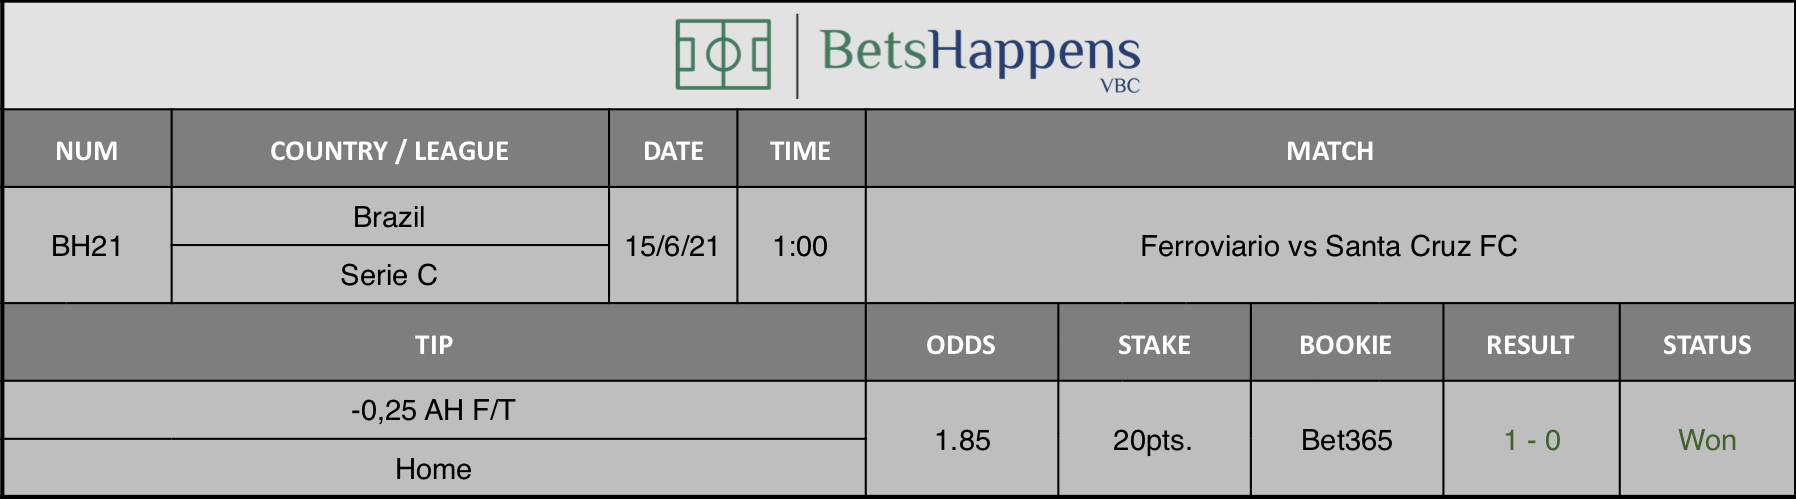 Results of our tip for the Ferroviario vs Santa Cruz FC Match -0,25 AH F/T Home is recommended.